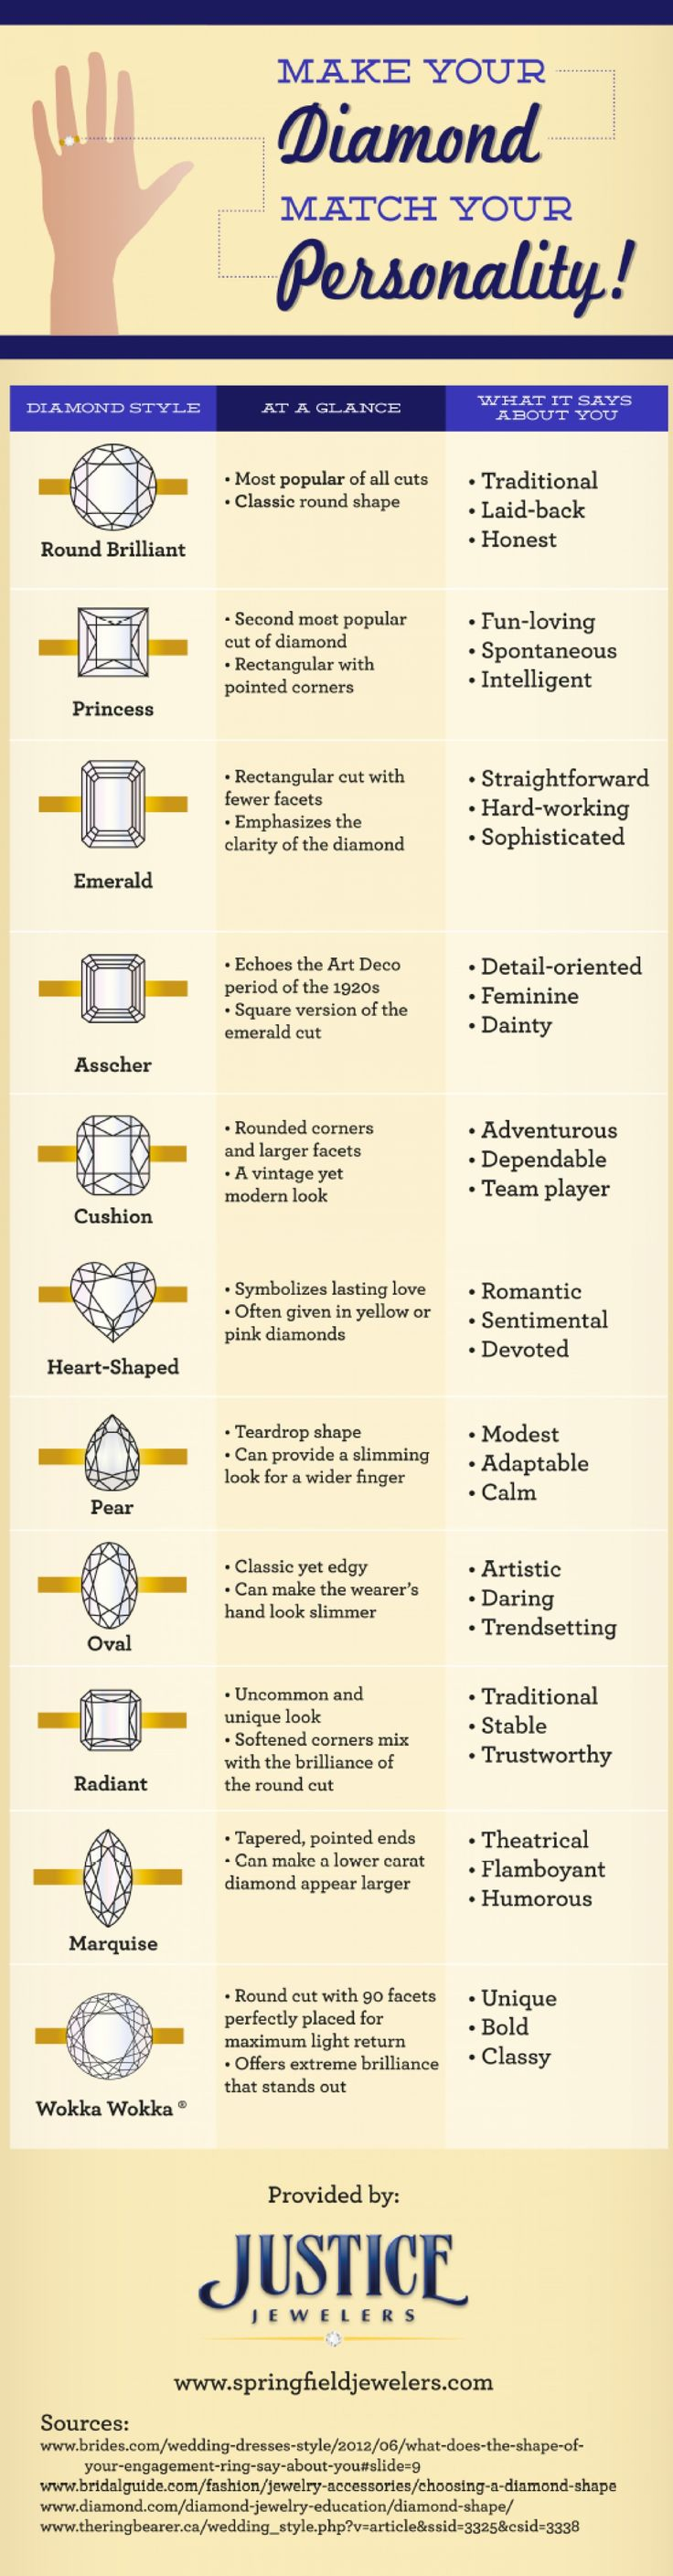 Make Your Diamond Match Your Personality Infographic ... Mine is Heart Shaped <3